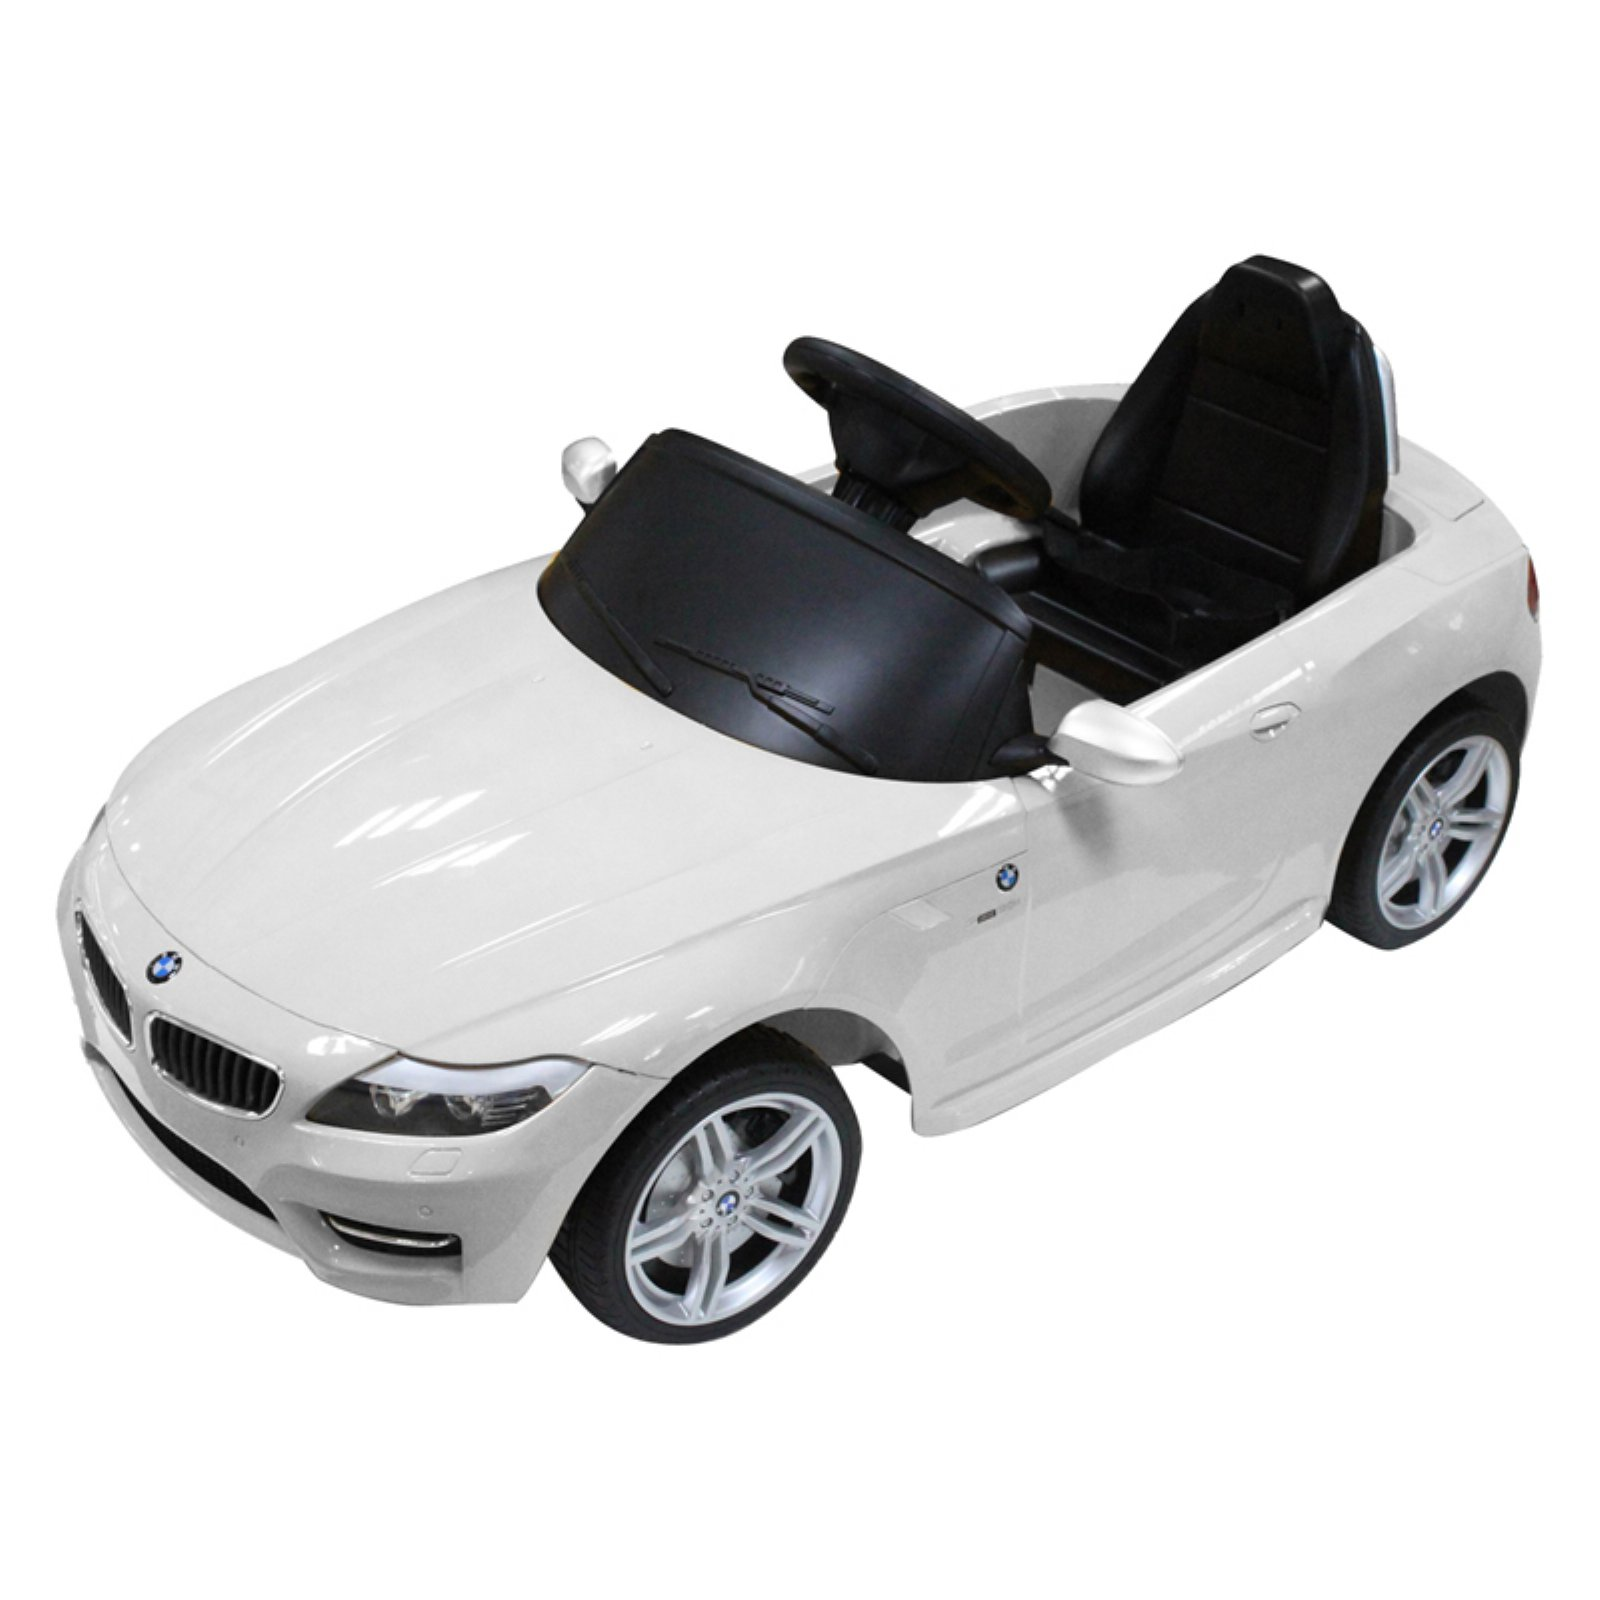 Aosom BMW Z4 6V Kids Electric Riding Toy Car